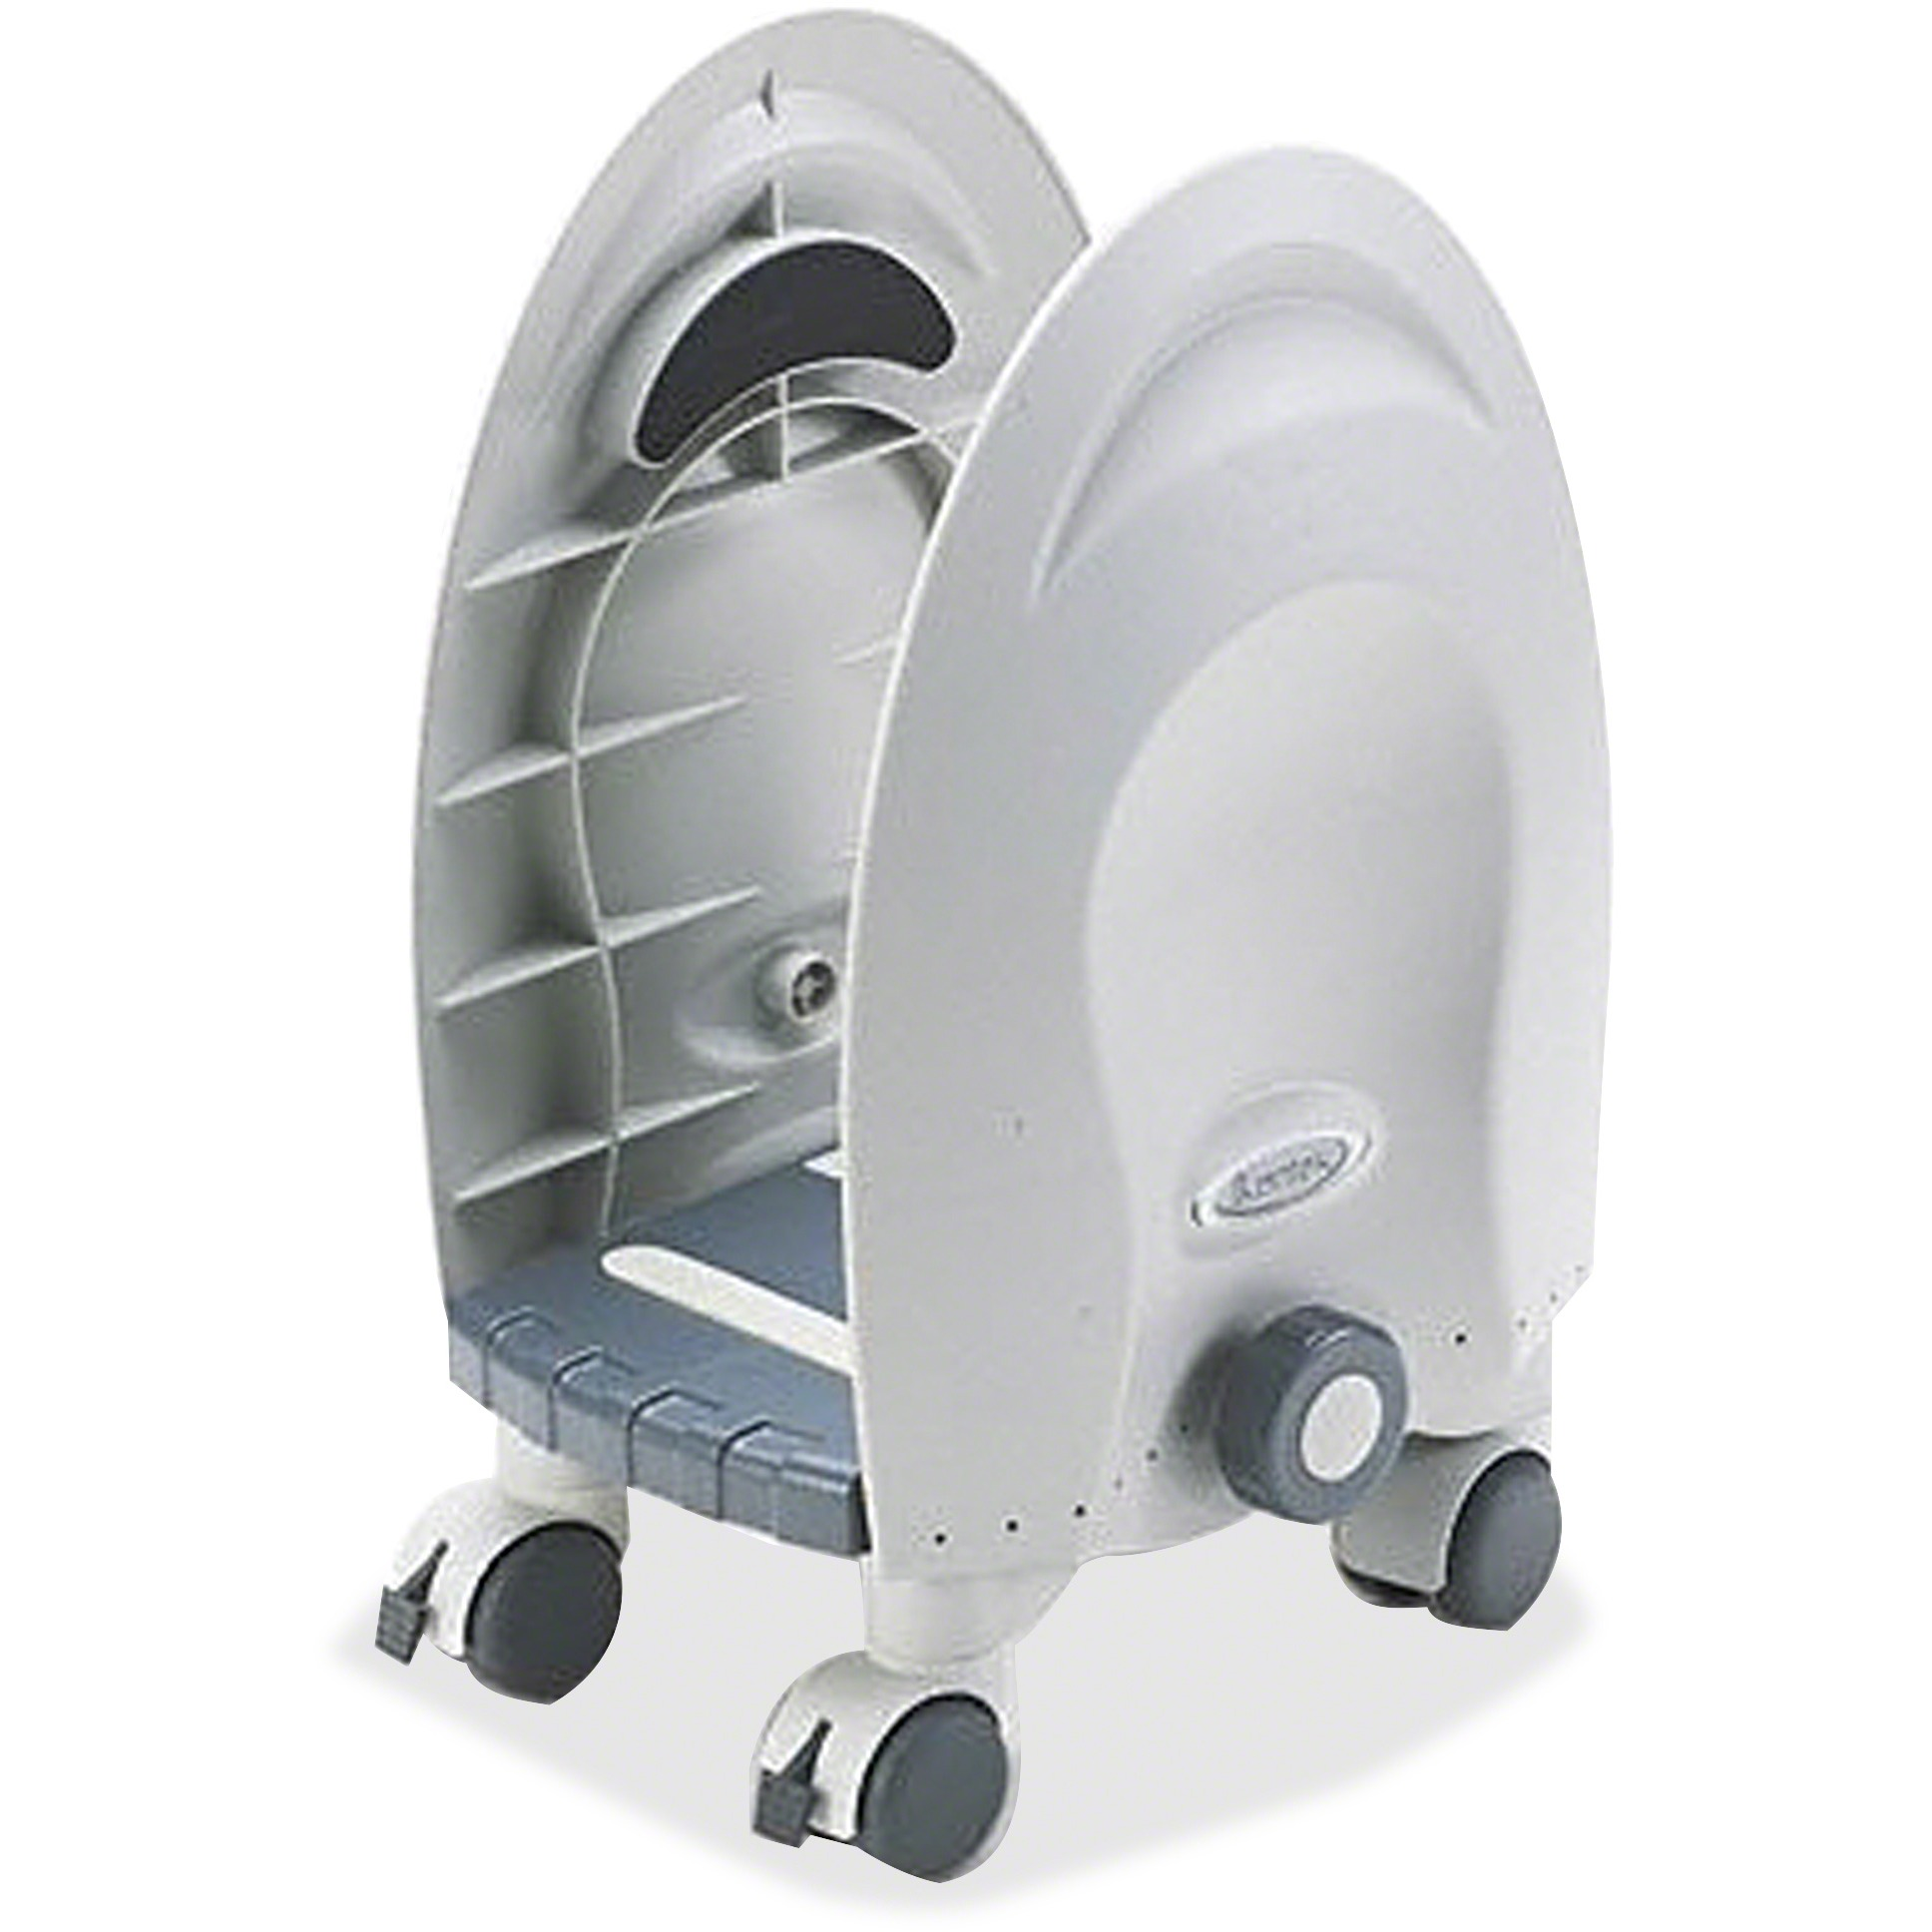 Kantek Deluxe Adjustable CPU Stand, Gray